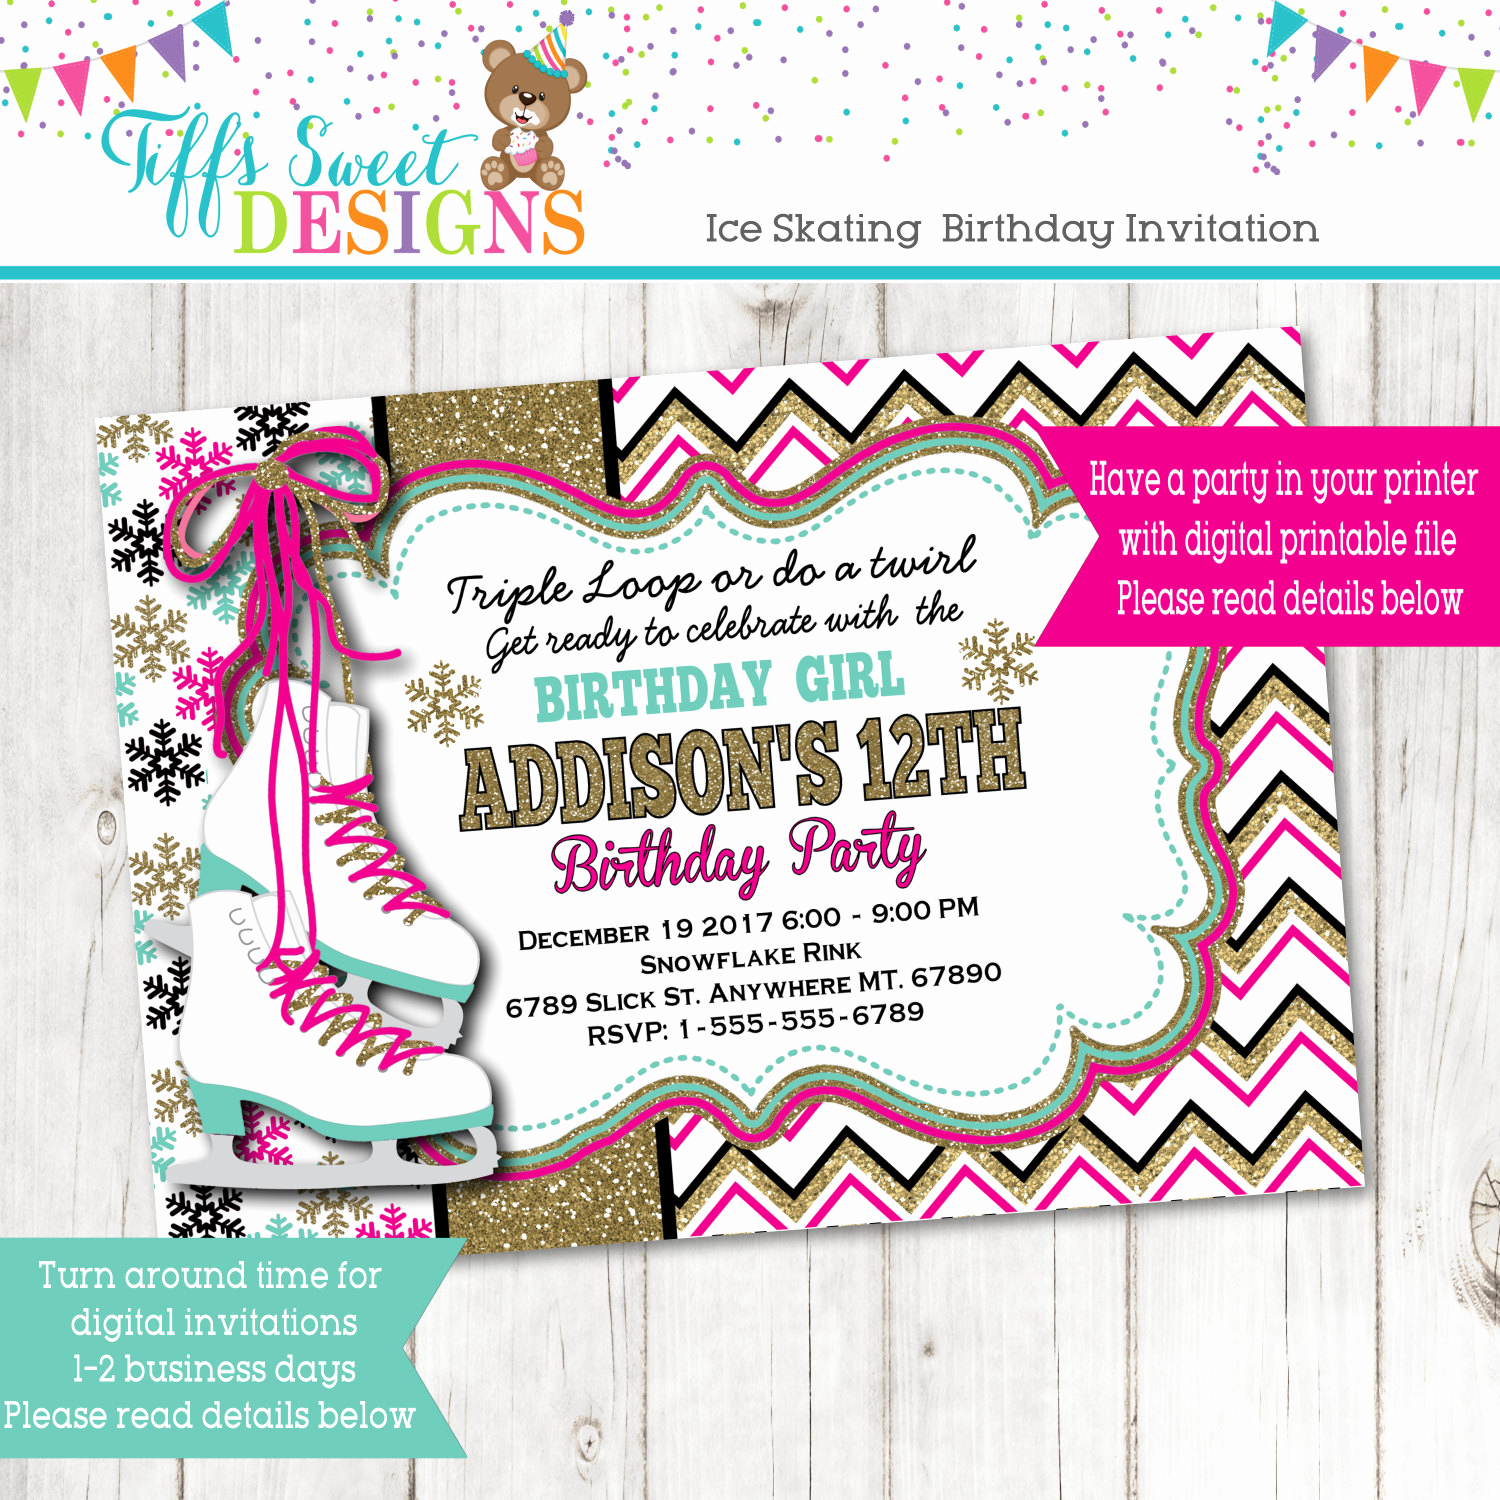 Ice Skate Party Invitation Luxury Ice Skating Birthday Party Invitation Ice Skate Party Gold